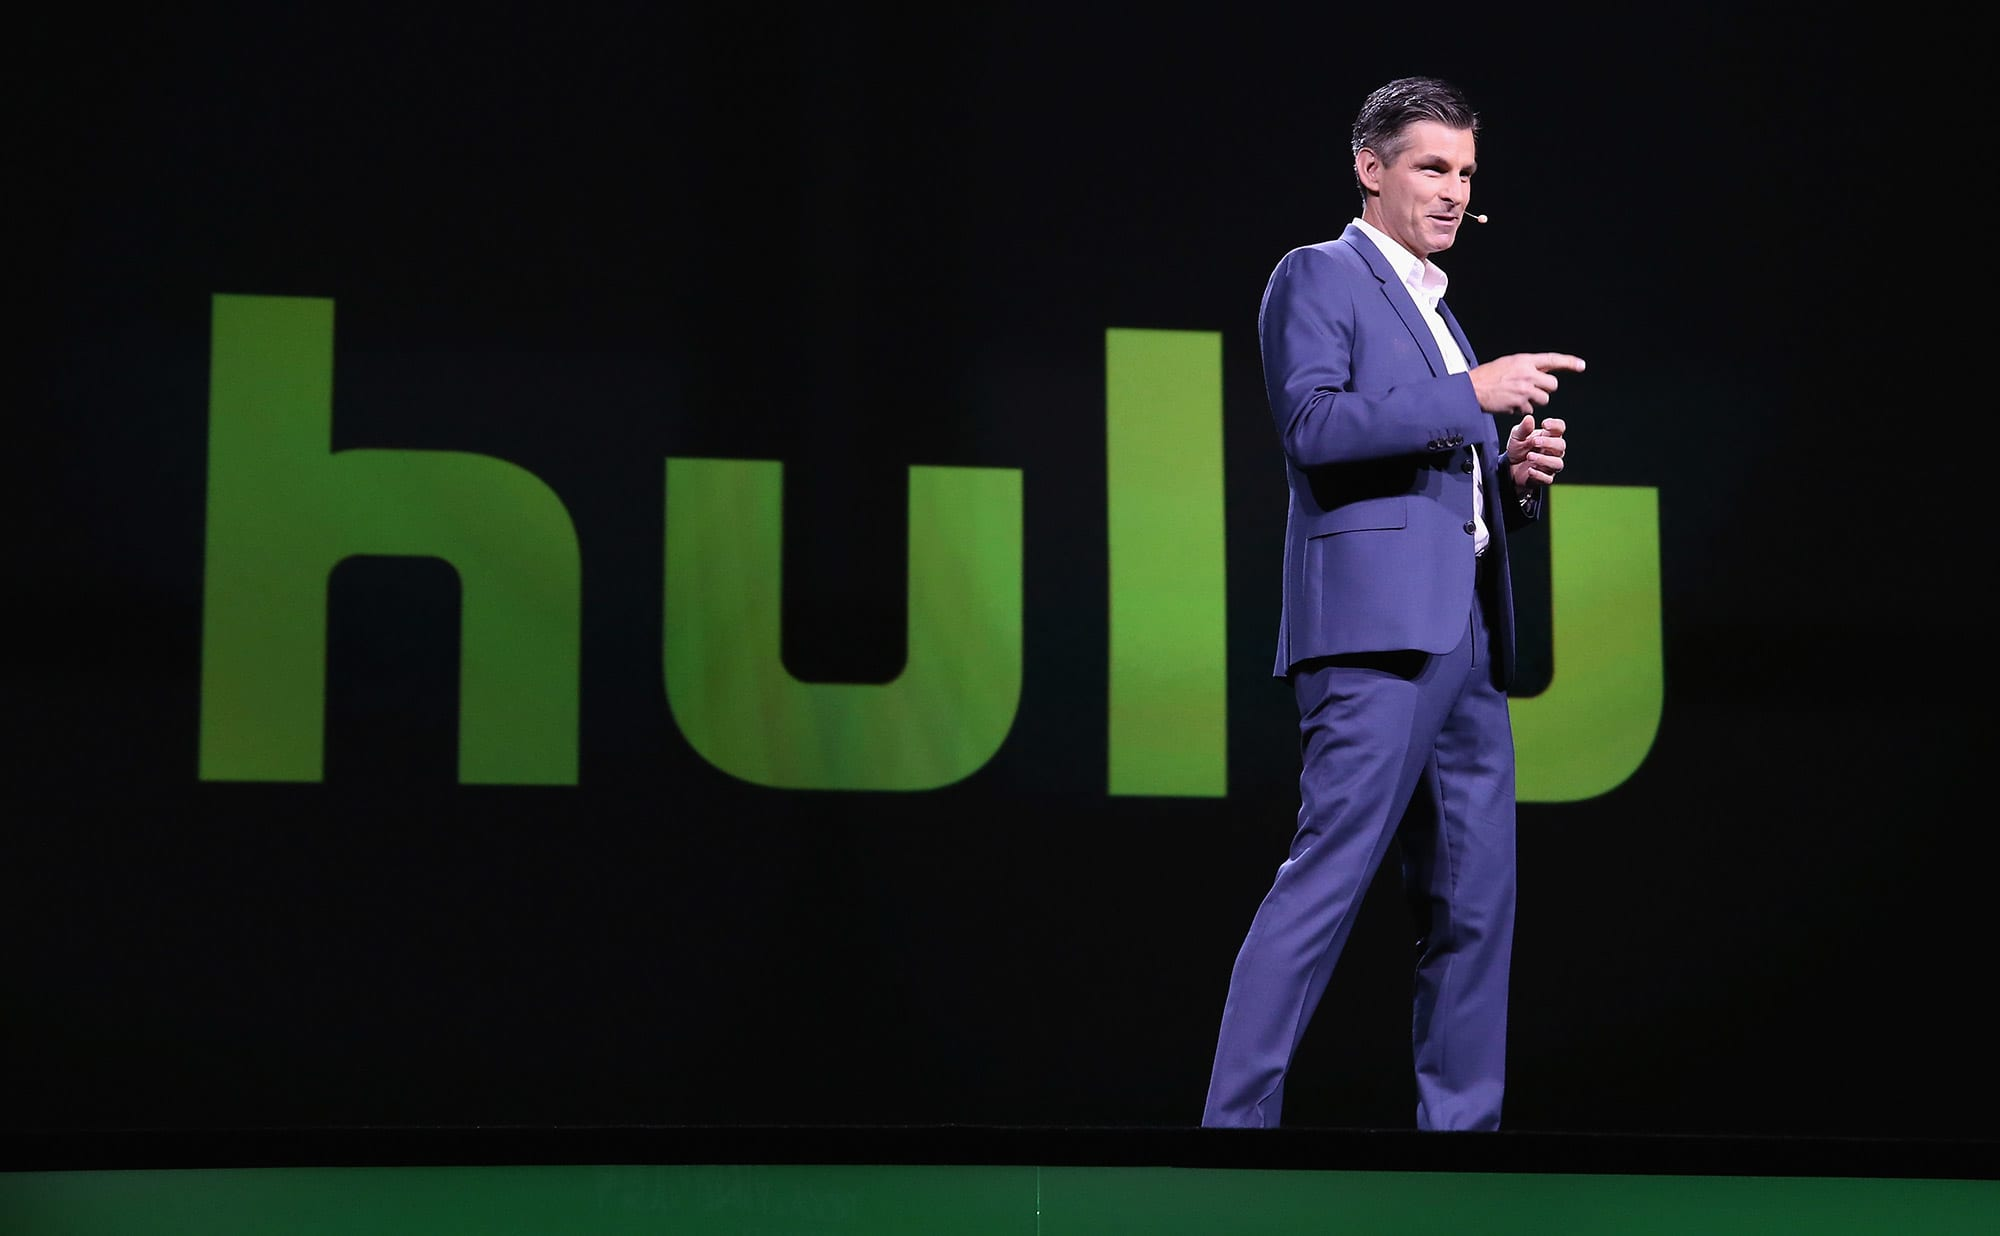 Cord cutting is accelerating thanks to Hulu, not Netflix, analyst says